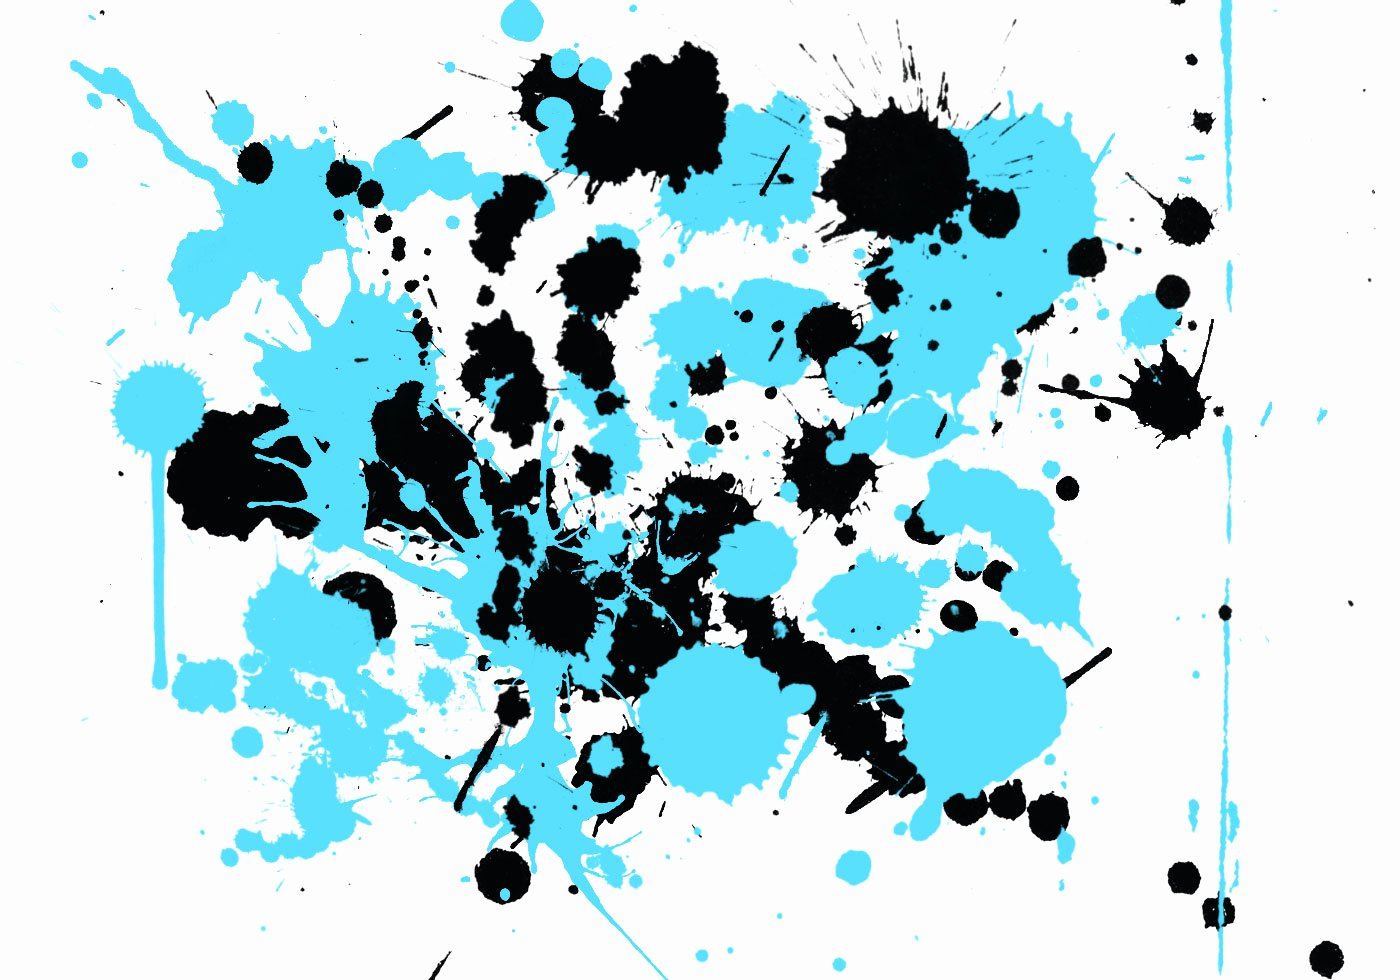 Paint Splatter Brush Photoshop Elegant High Res Splatter Brushes Free Shop Brushes at